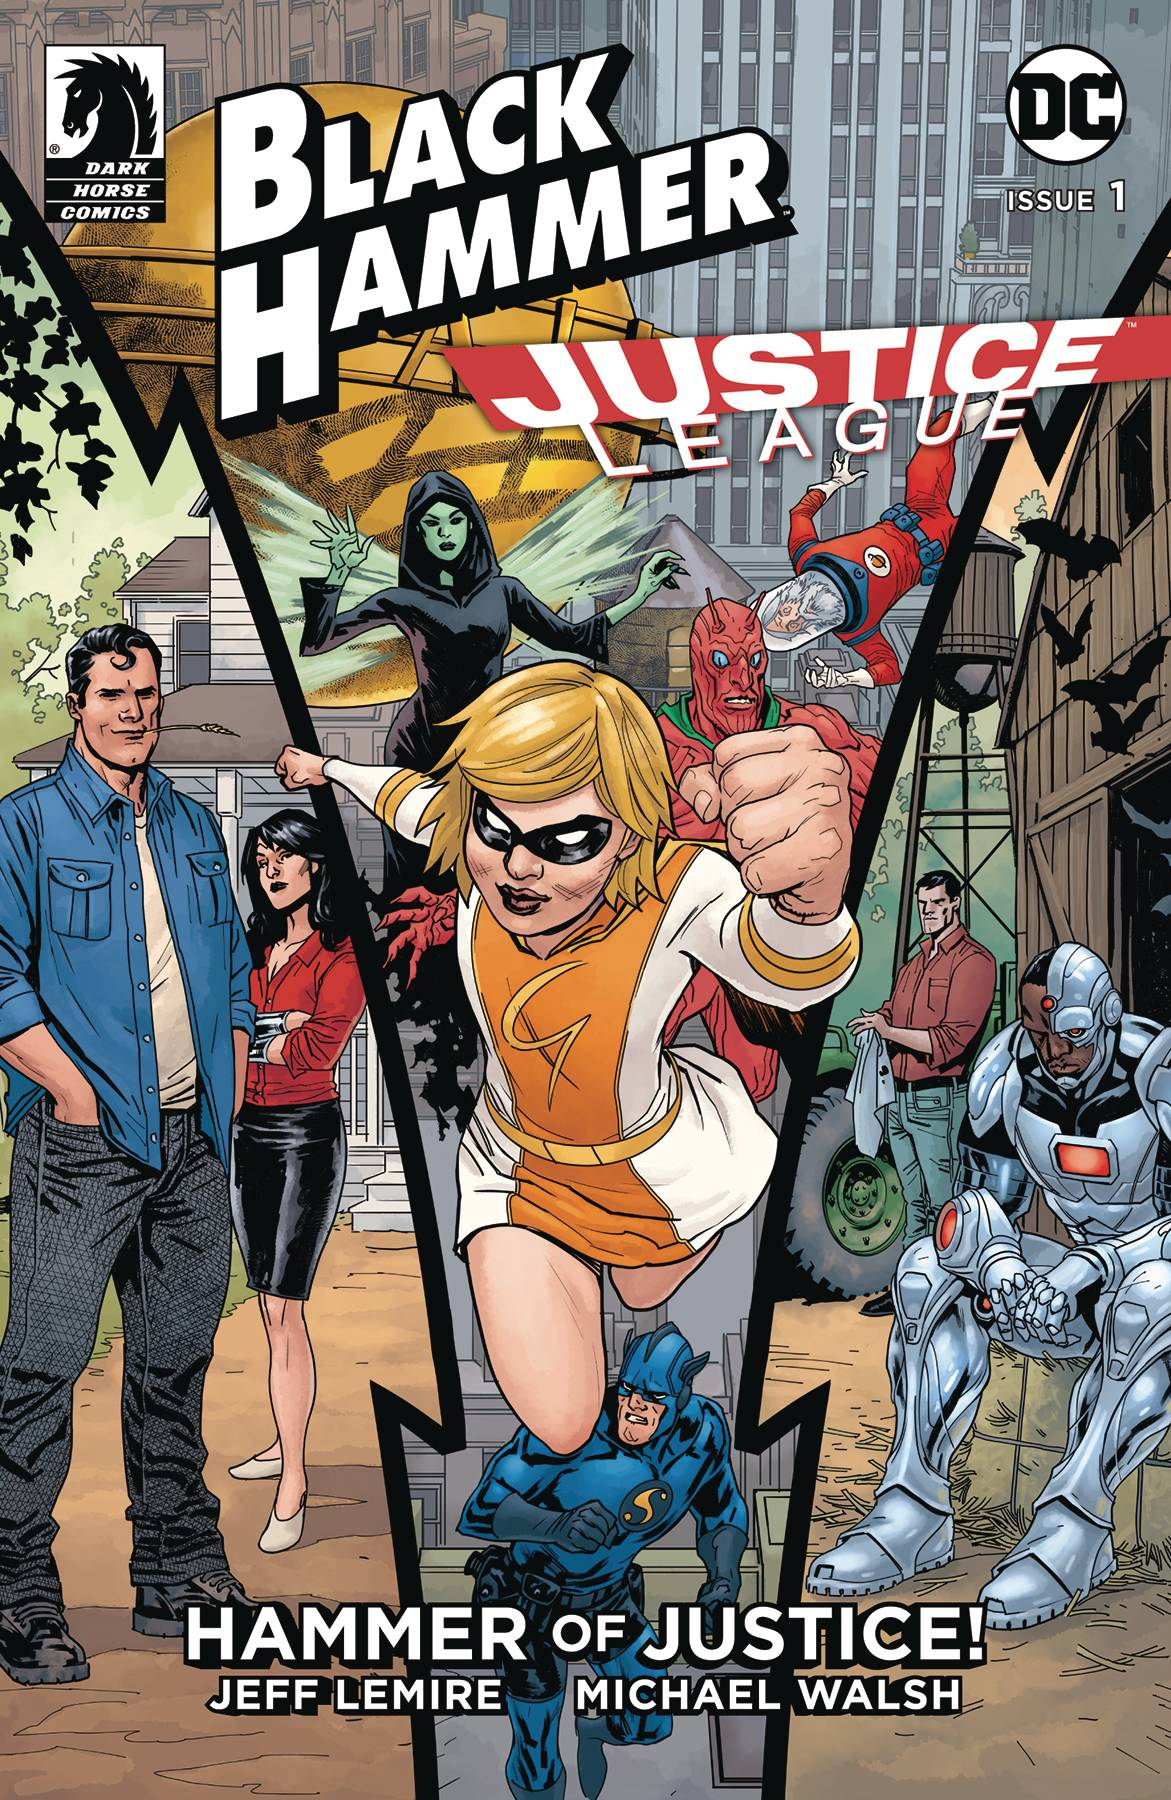 BLACK HAMMER JUSTICE LEAGUE 1 of 5 CVR C PAQUETTE.jpg